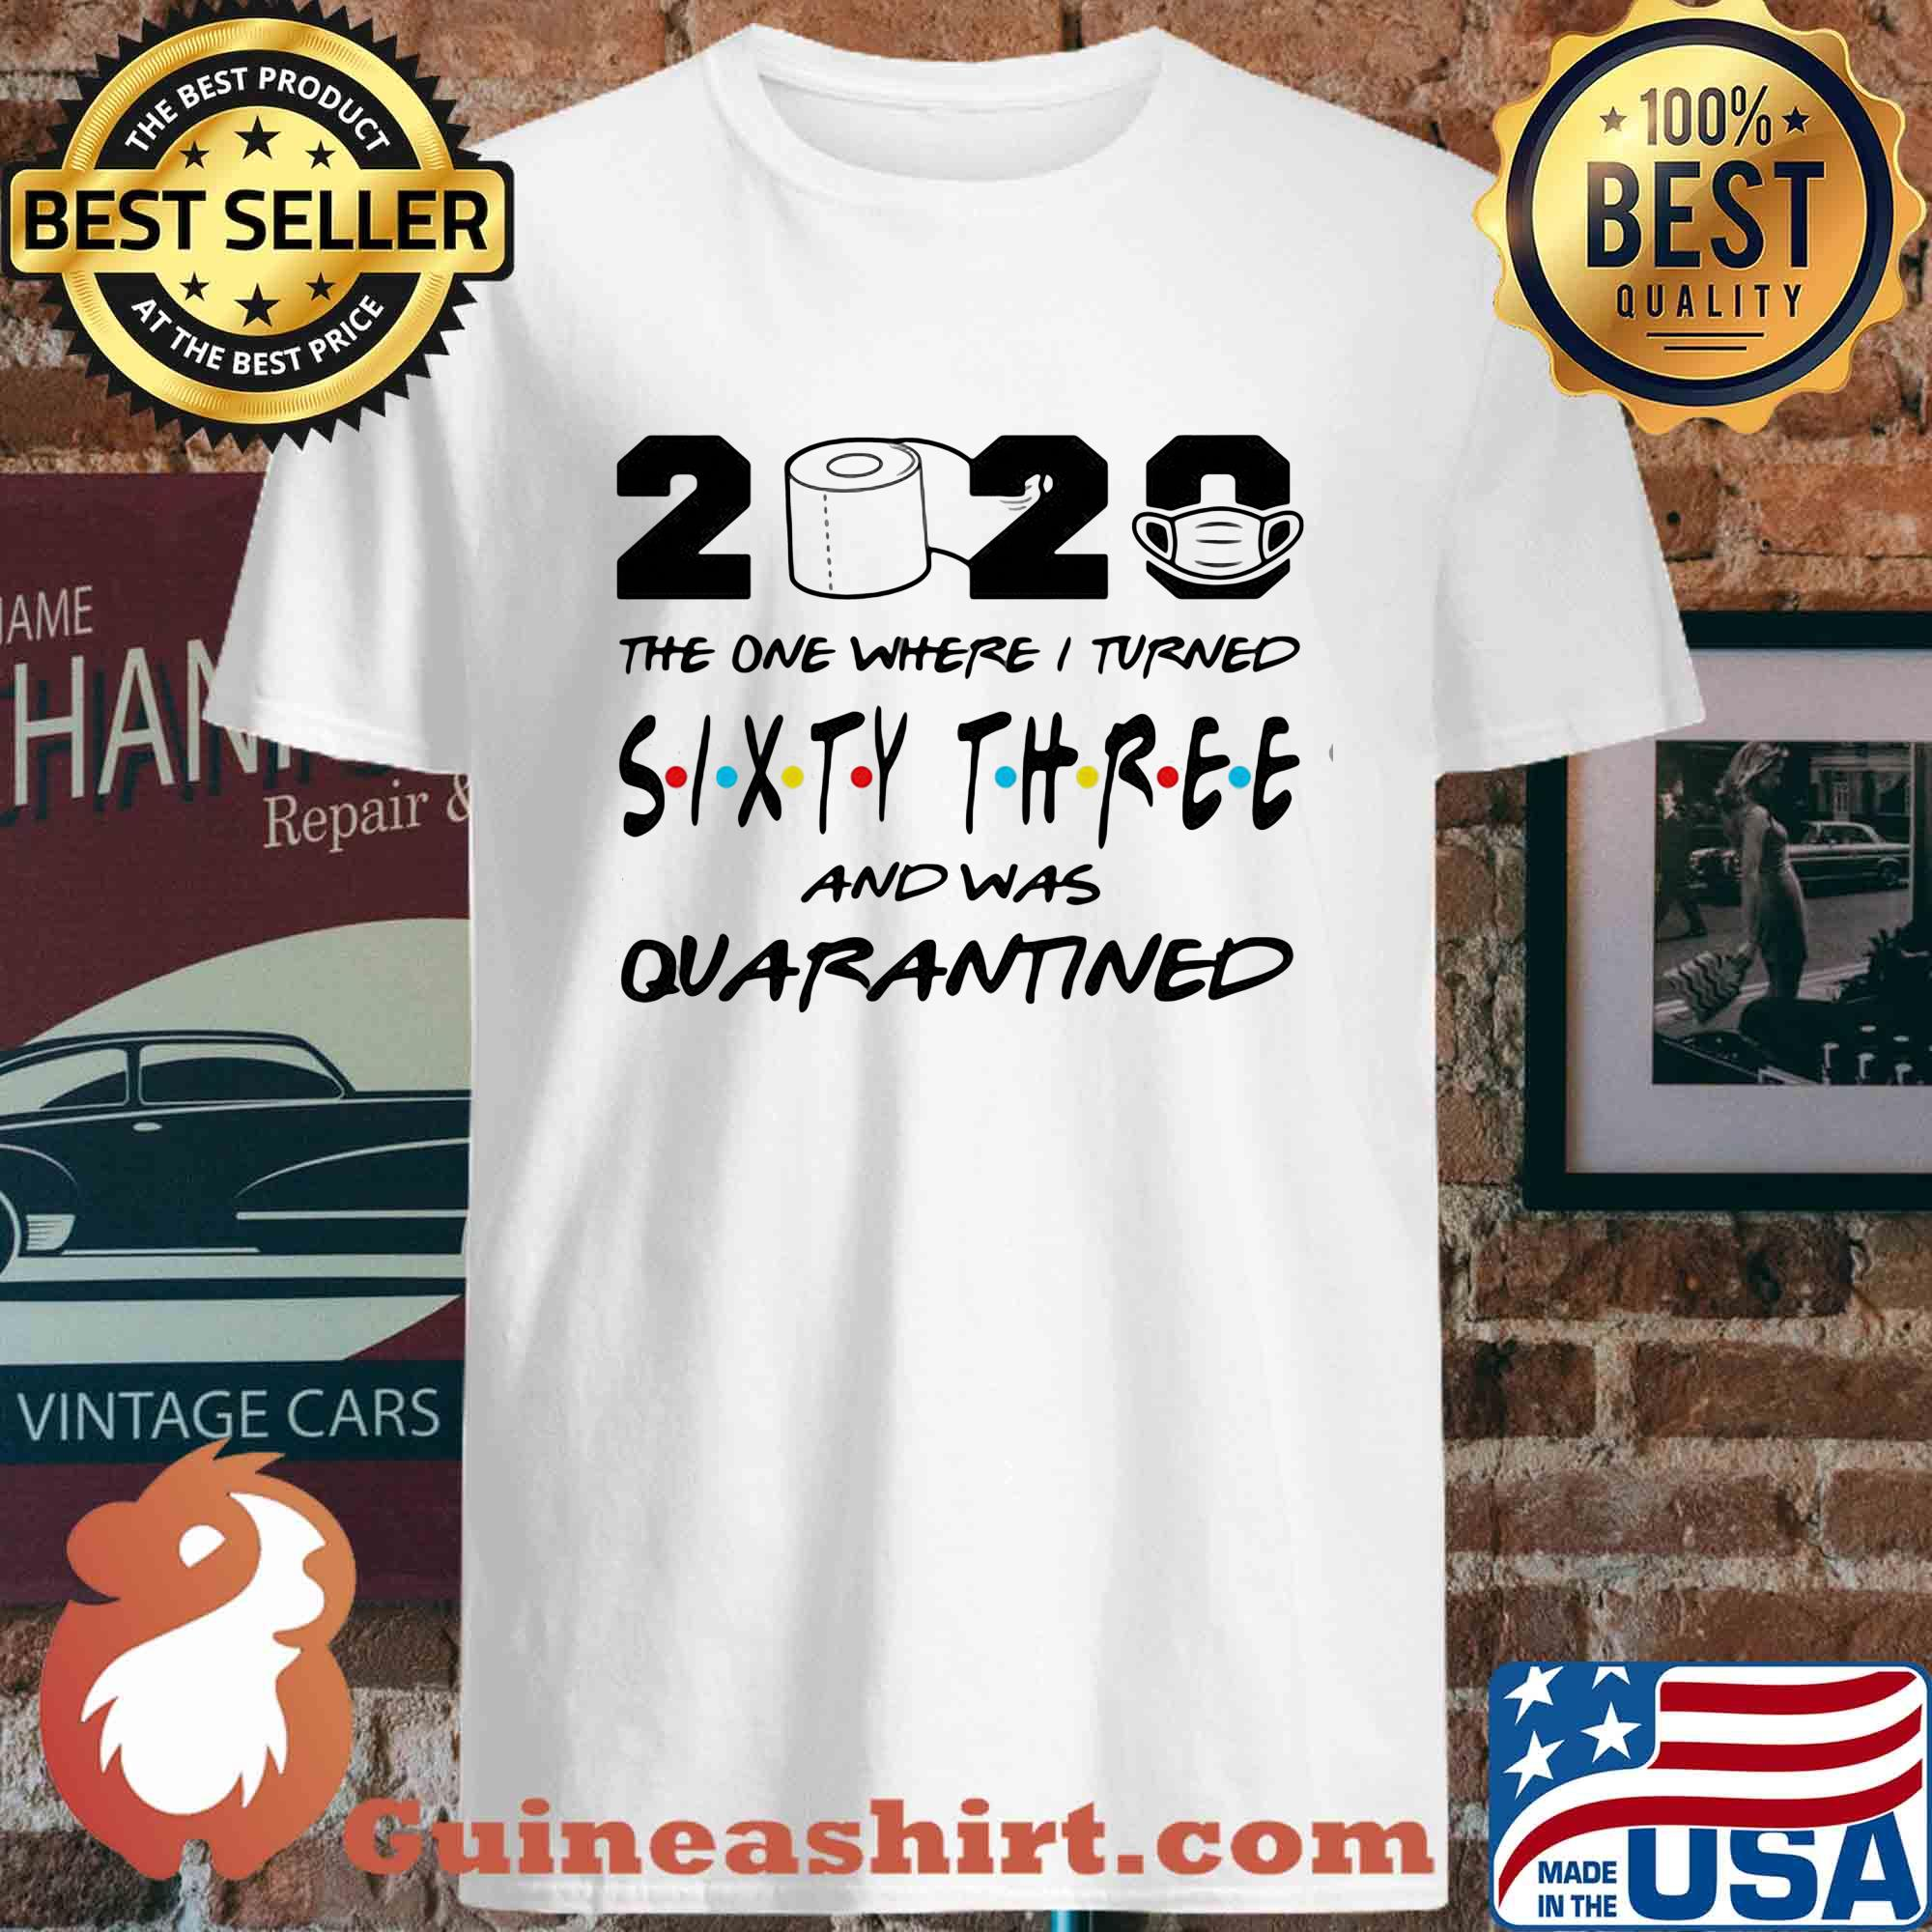 2020 the one where I turned sixty three and was quarantined shirt